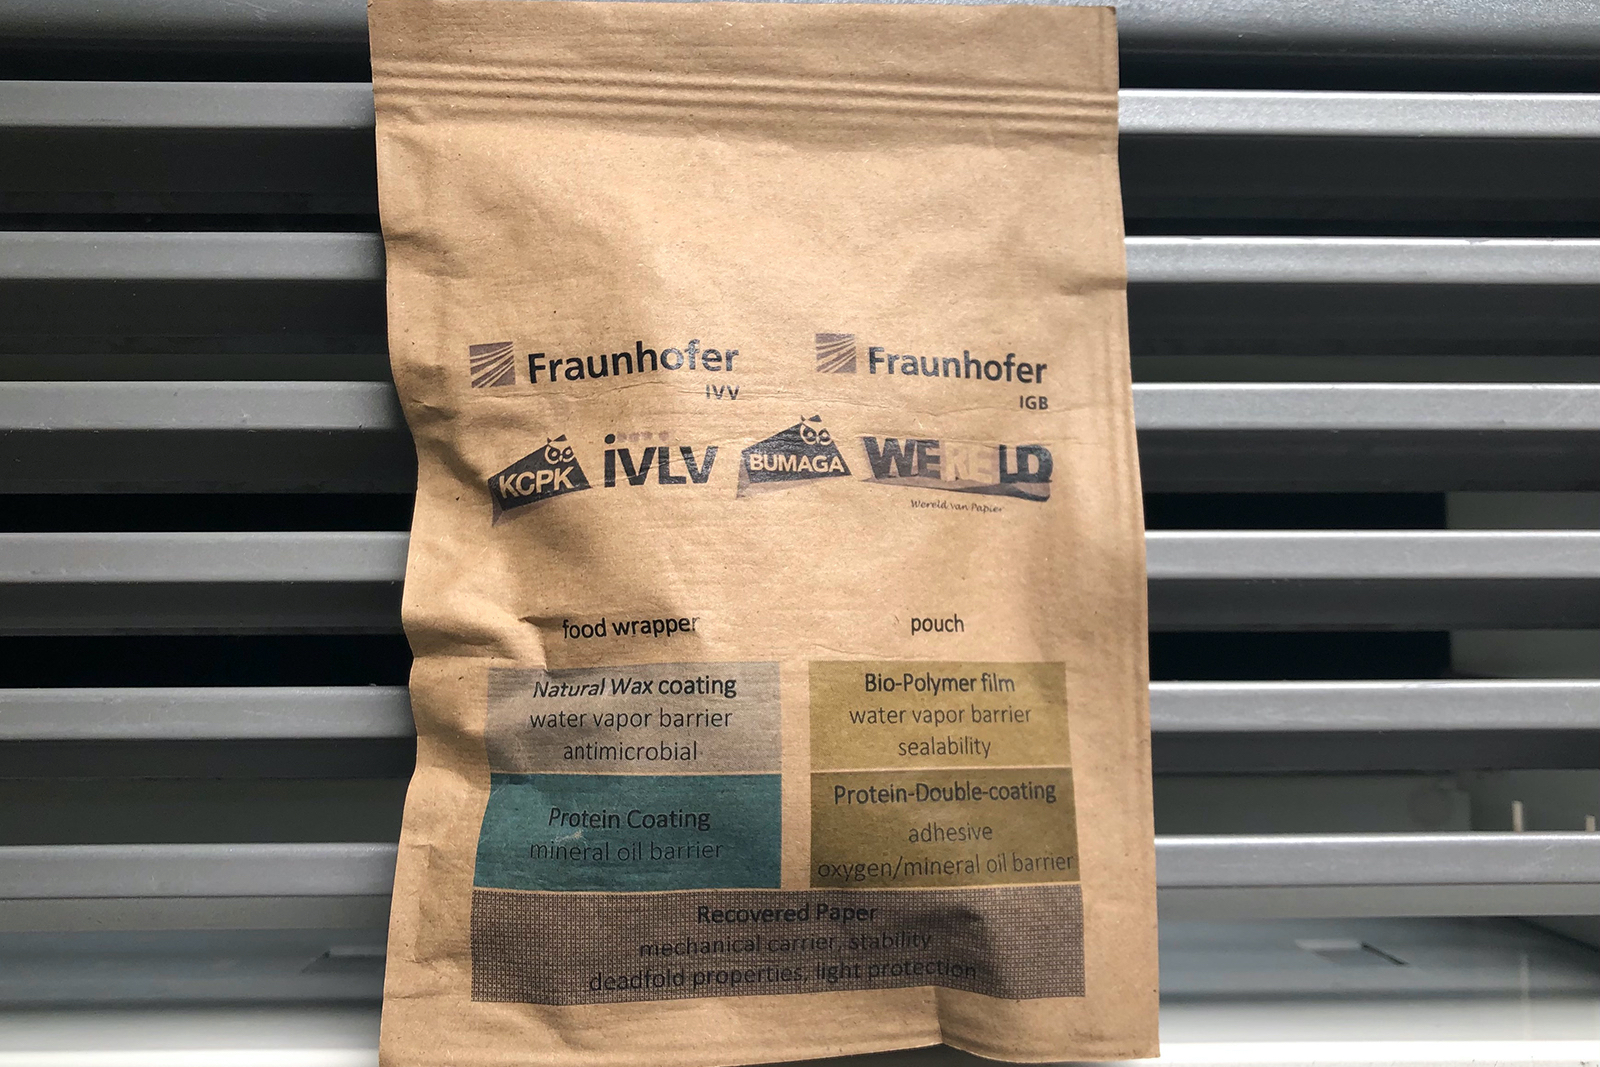 Product branding and other information can be printed on the bag, just as it would on any other paper packaging material